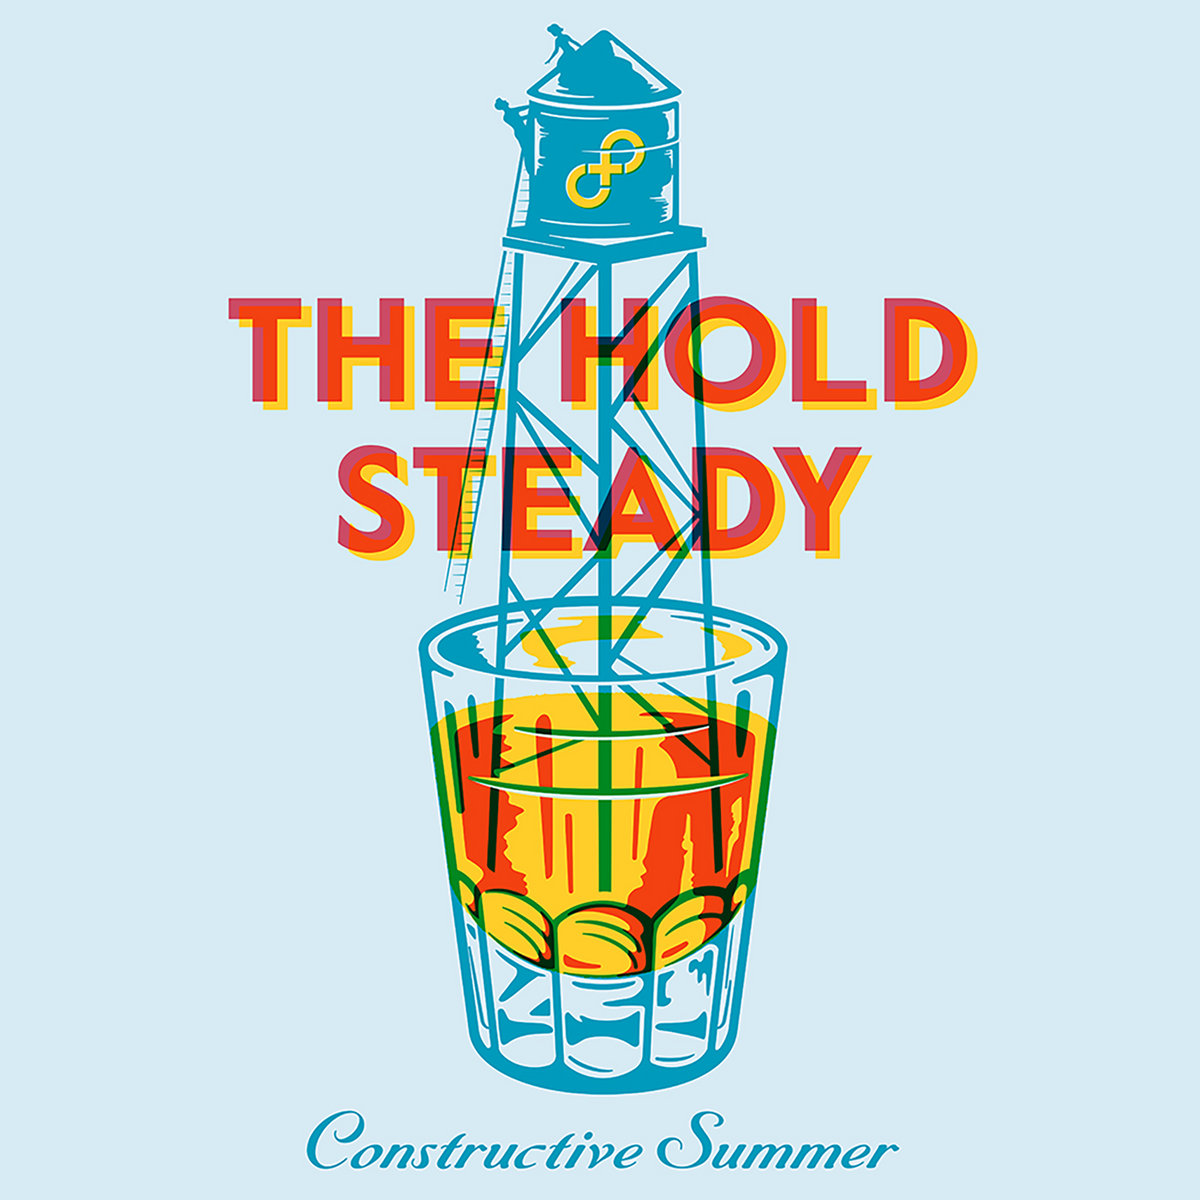 by The Hold Steady